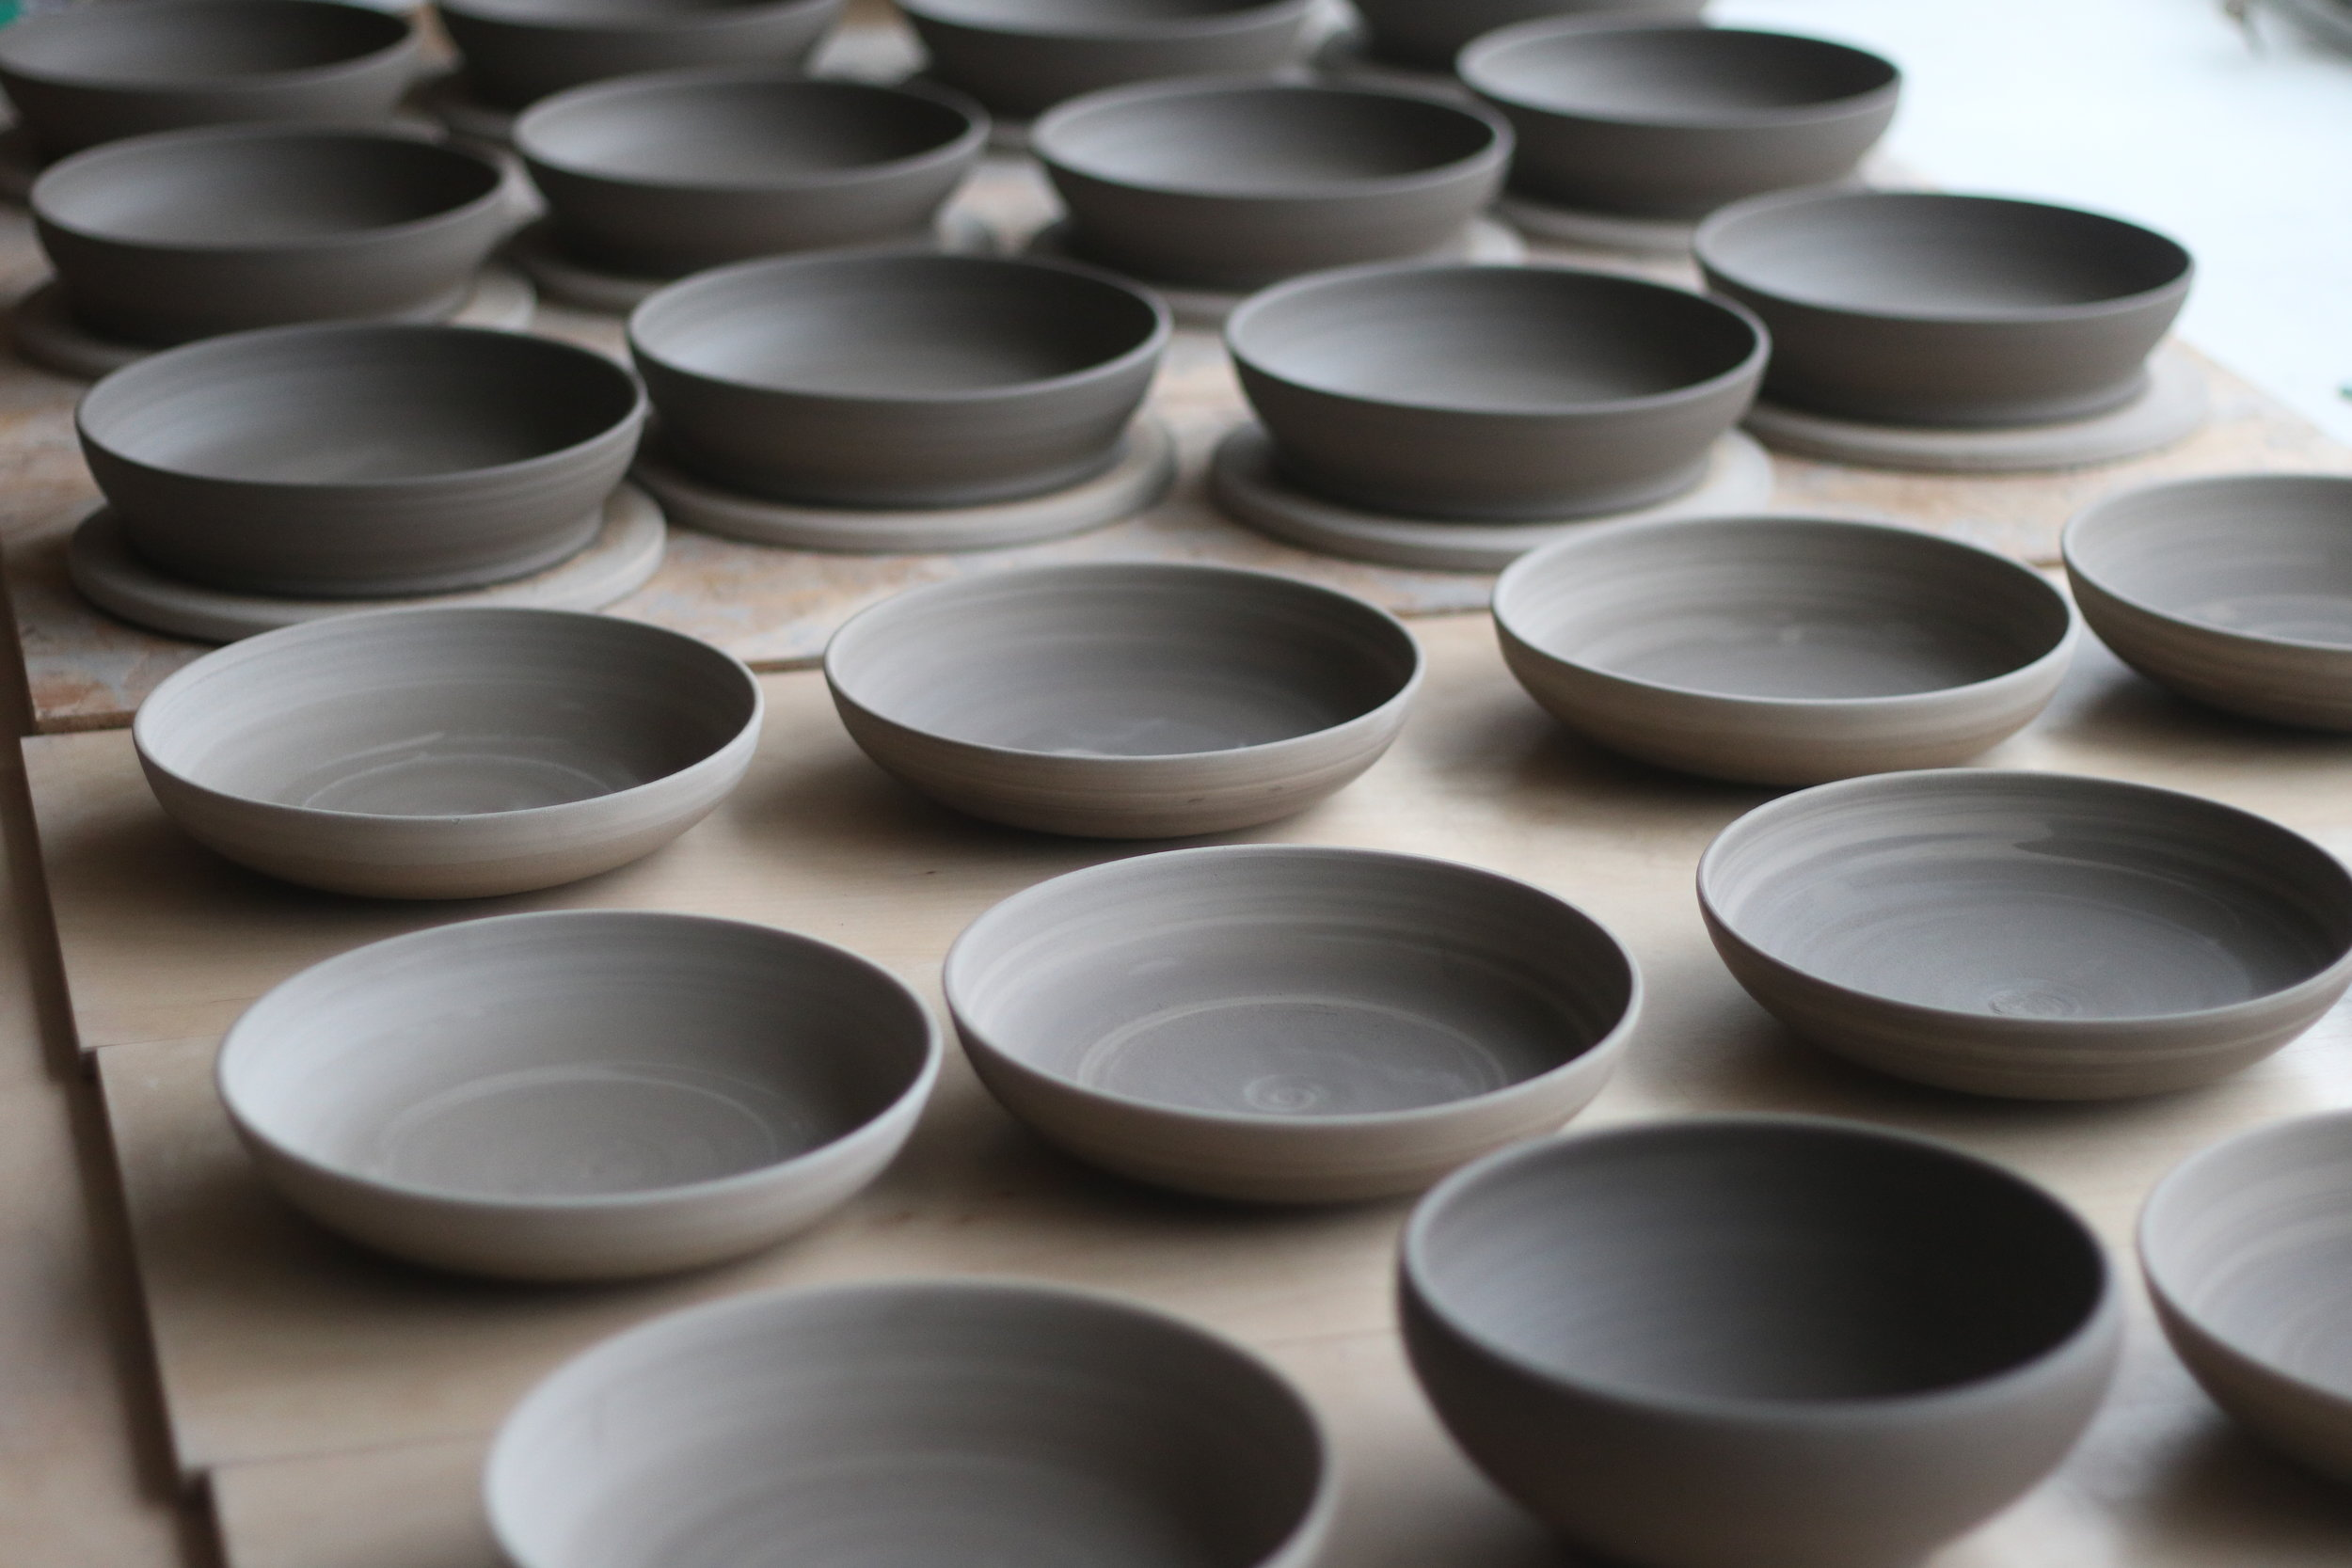 What is your favourite piece to throw? - Bowls. They're a satisfying shape to work on and relatively quick to throw.